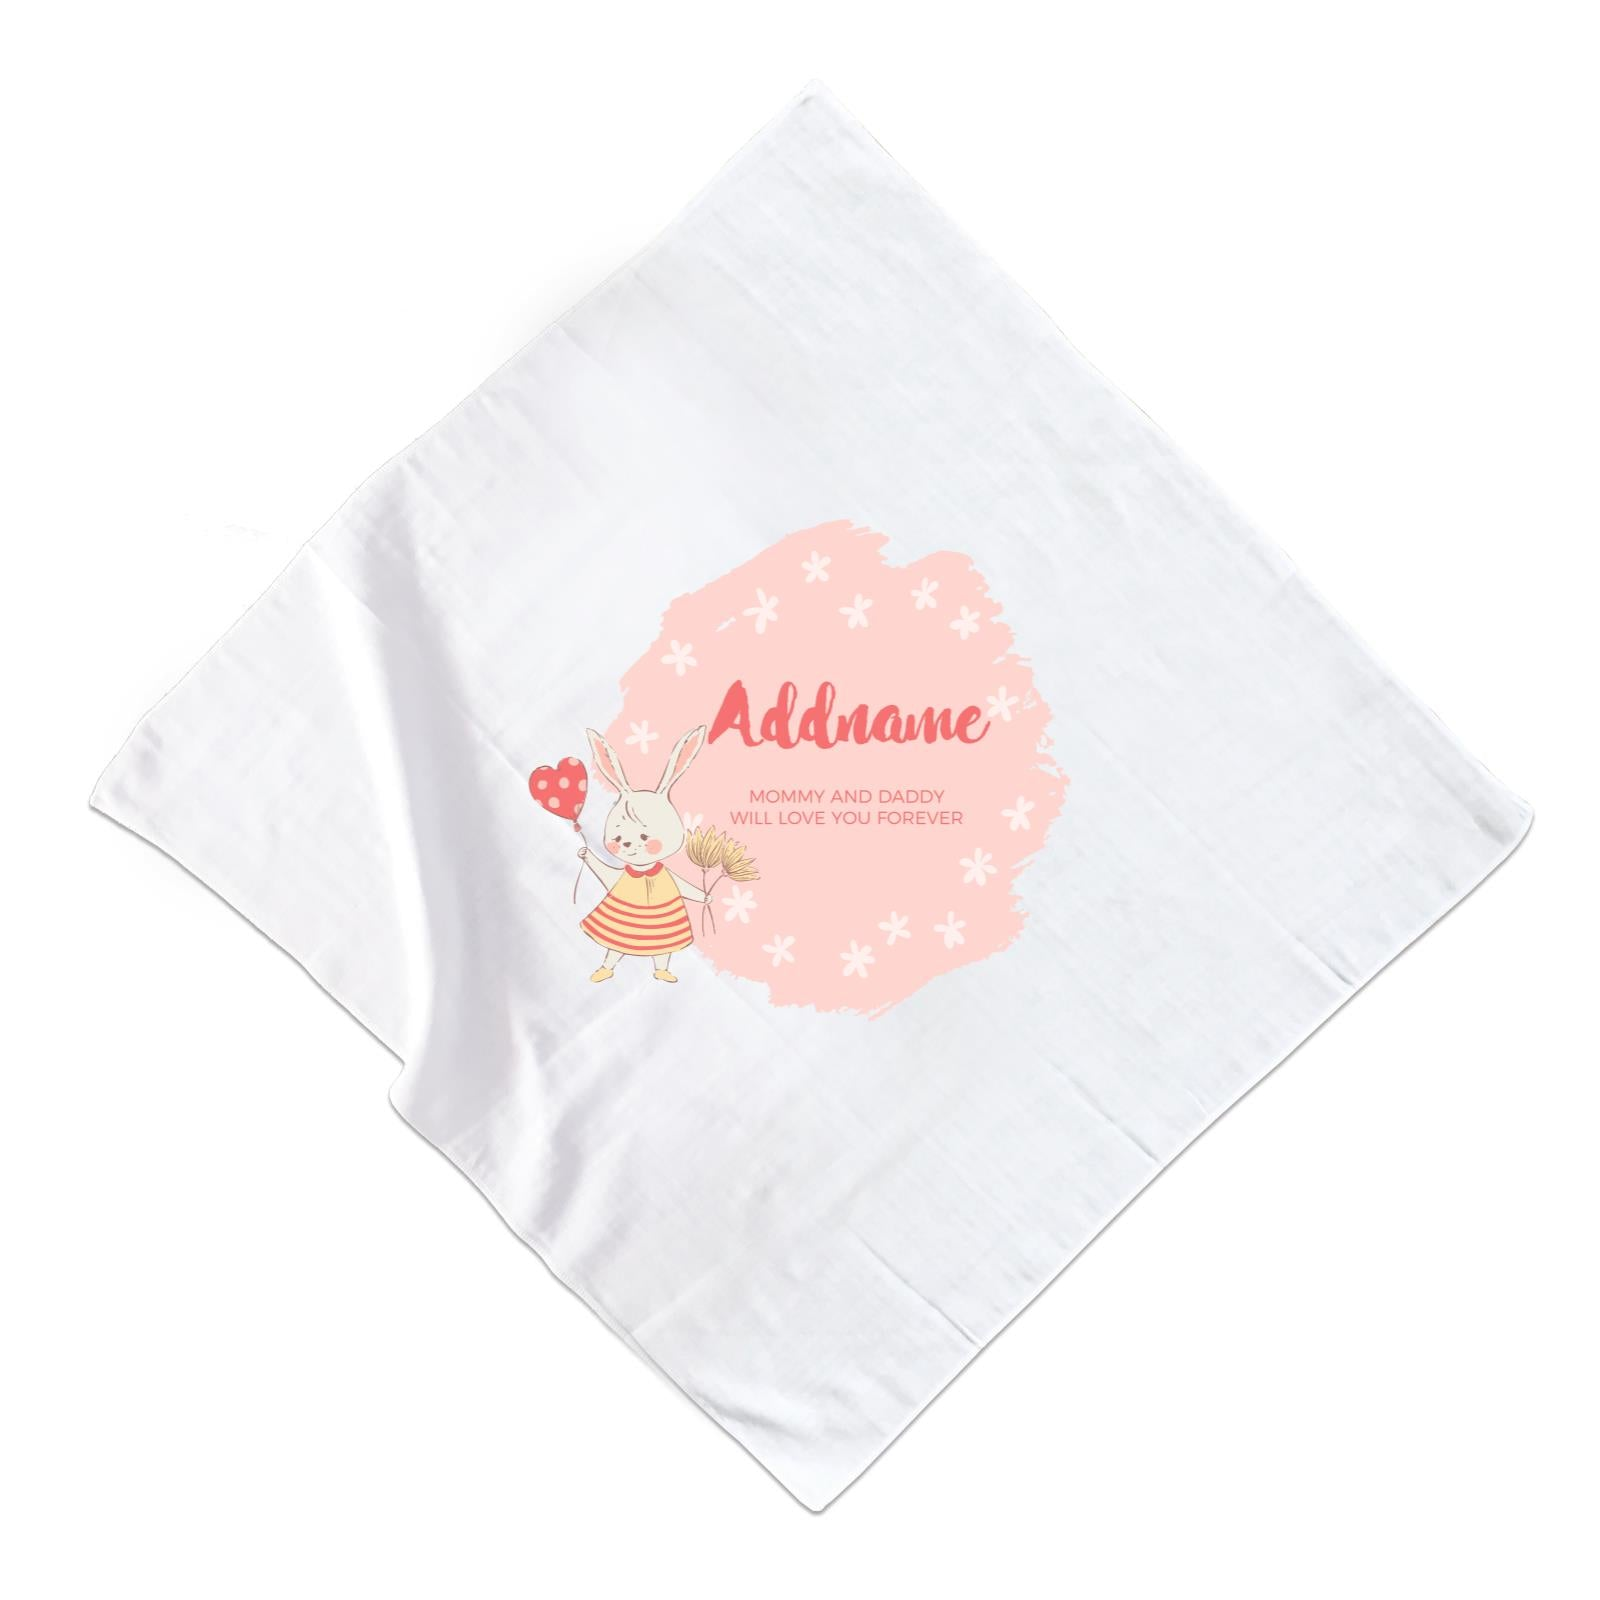 Cute Girl Rabbit with Heart Balloon Personalizable with Name and Text Muslin Square